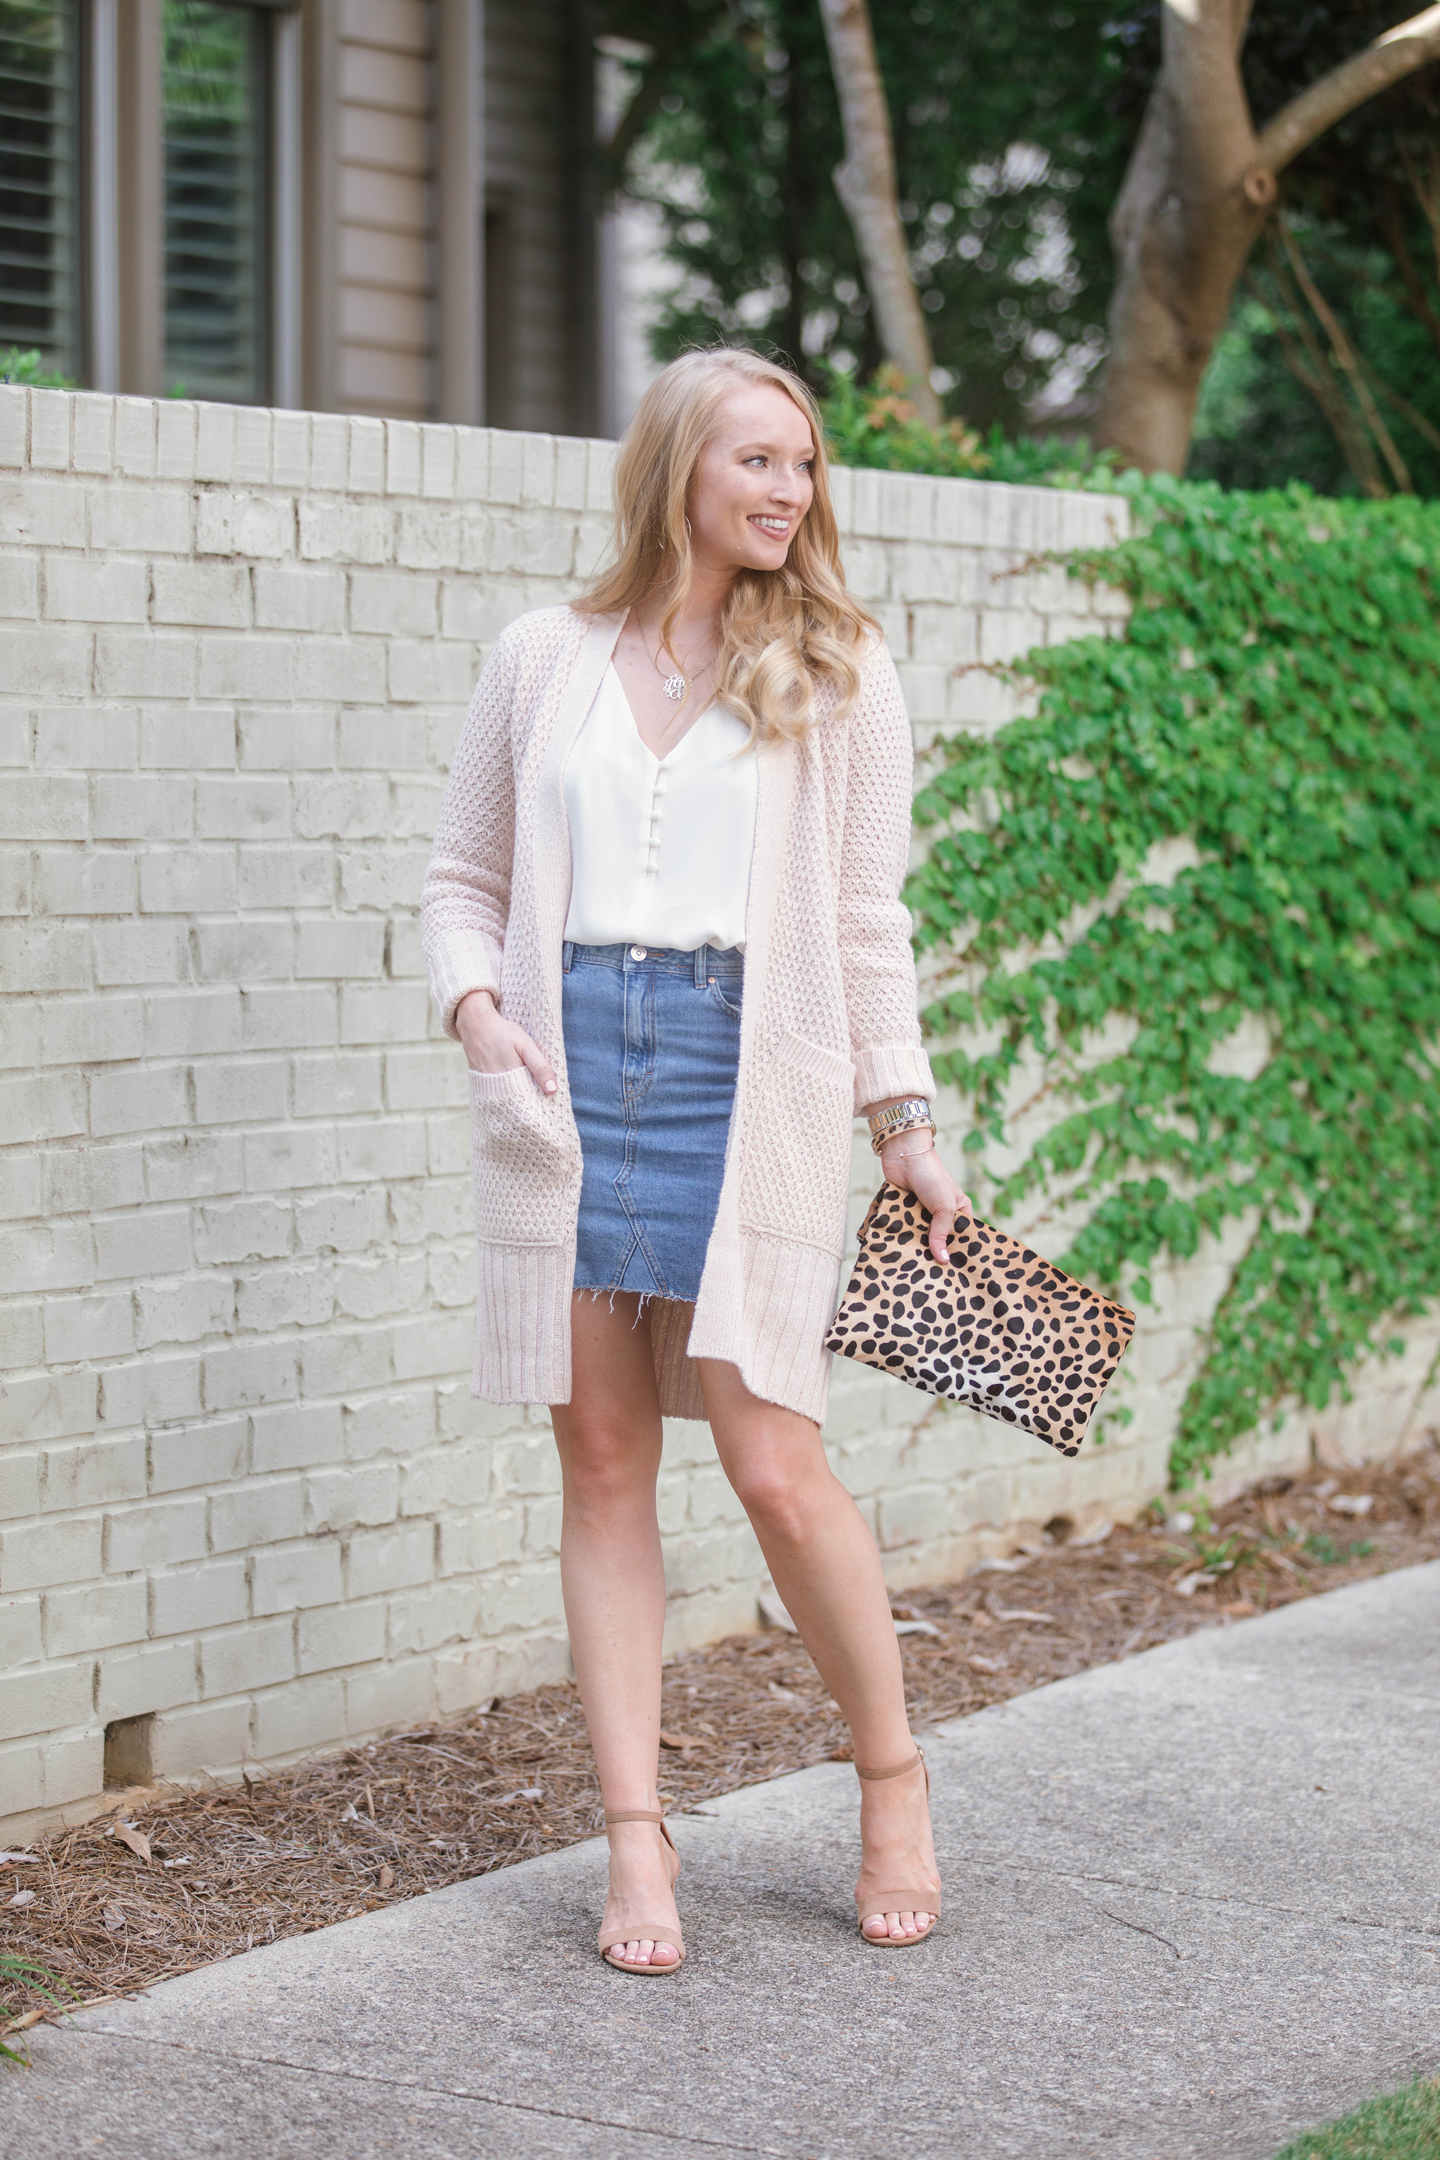 denim-skirt-outfit-ideas-strawberry-chic